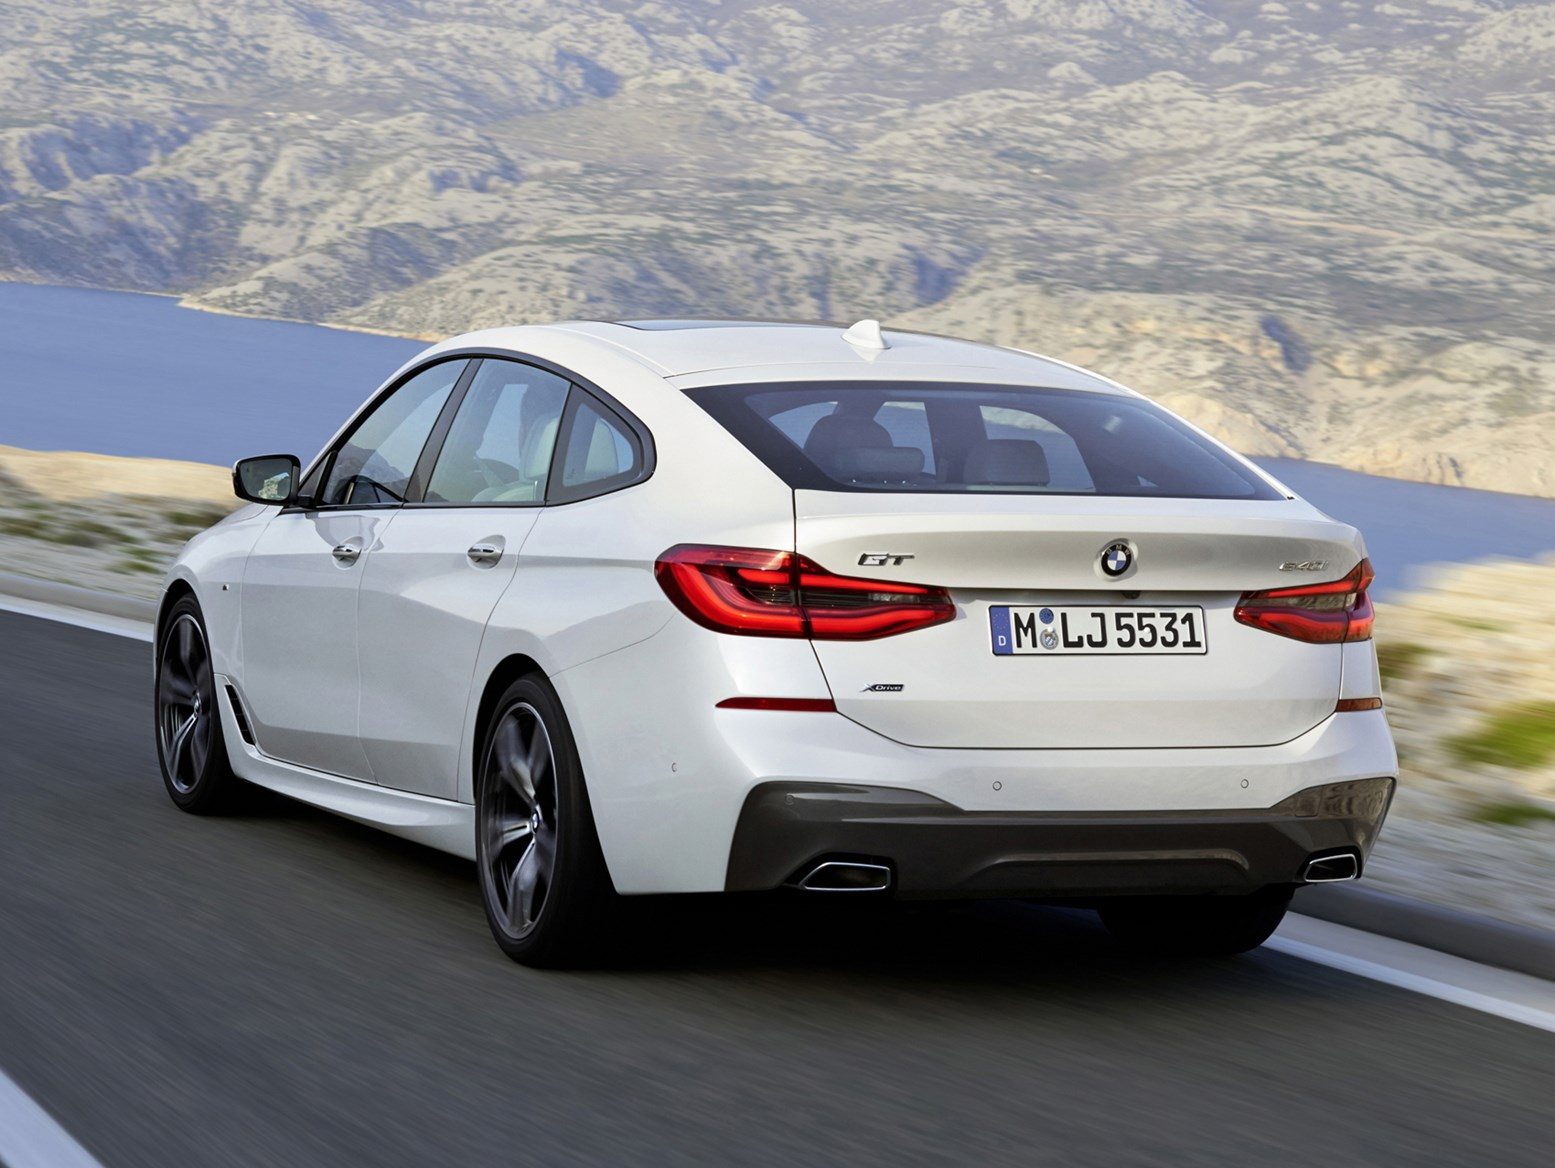 Used BMW 6-Series Gran Turismo (2017 - 2020) Review   Parkers